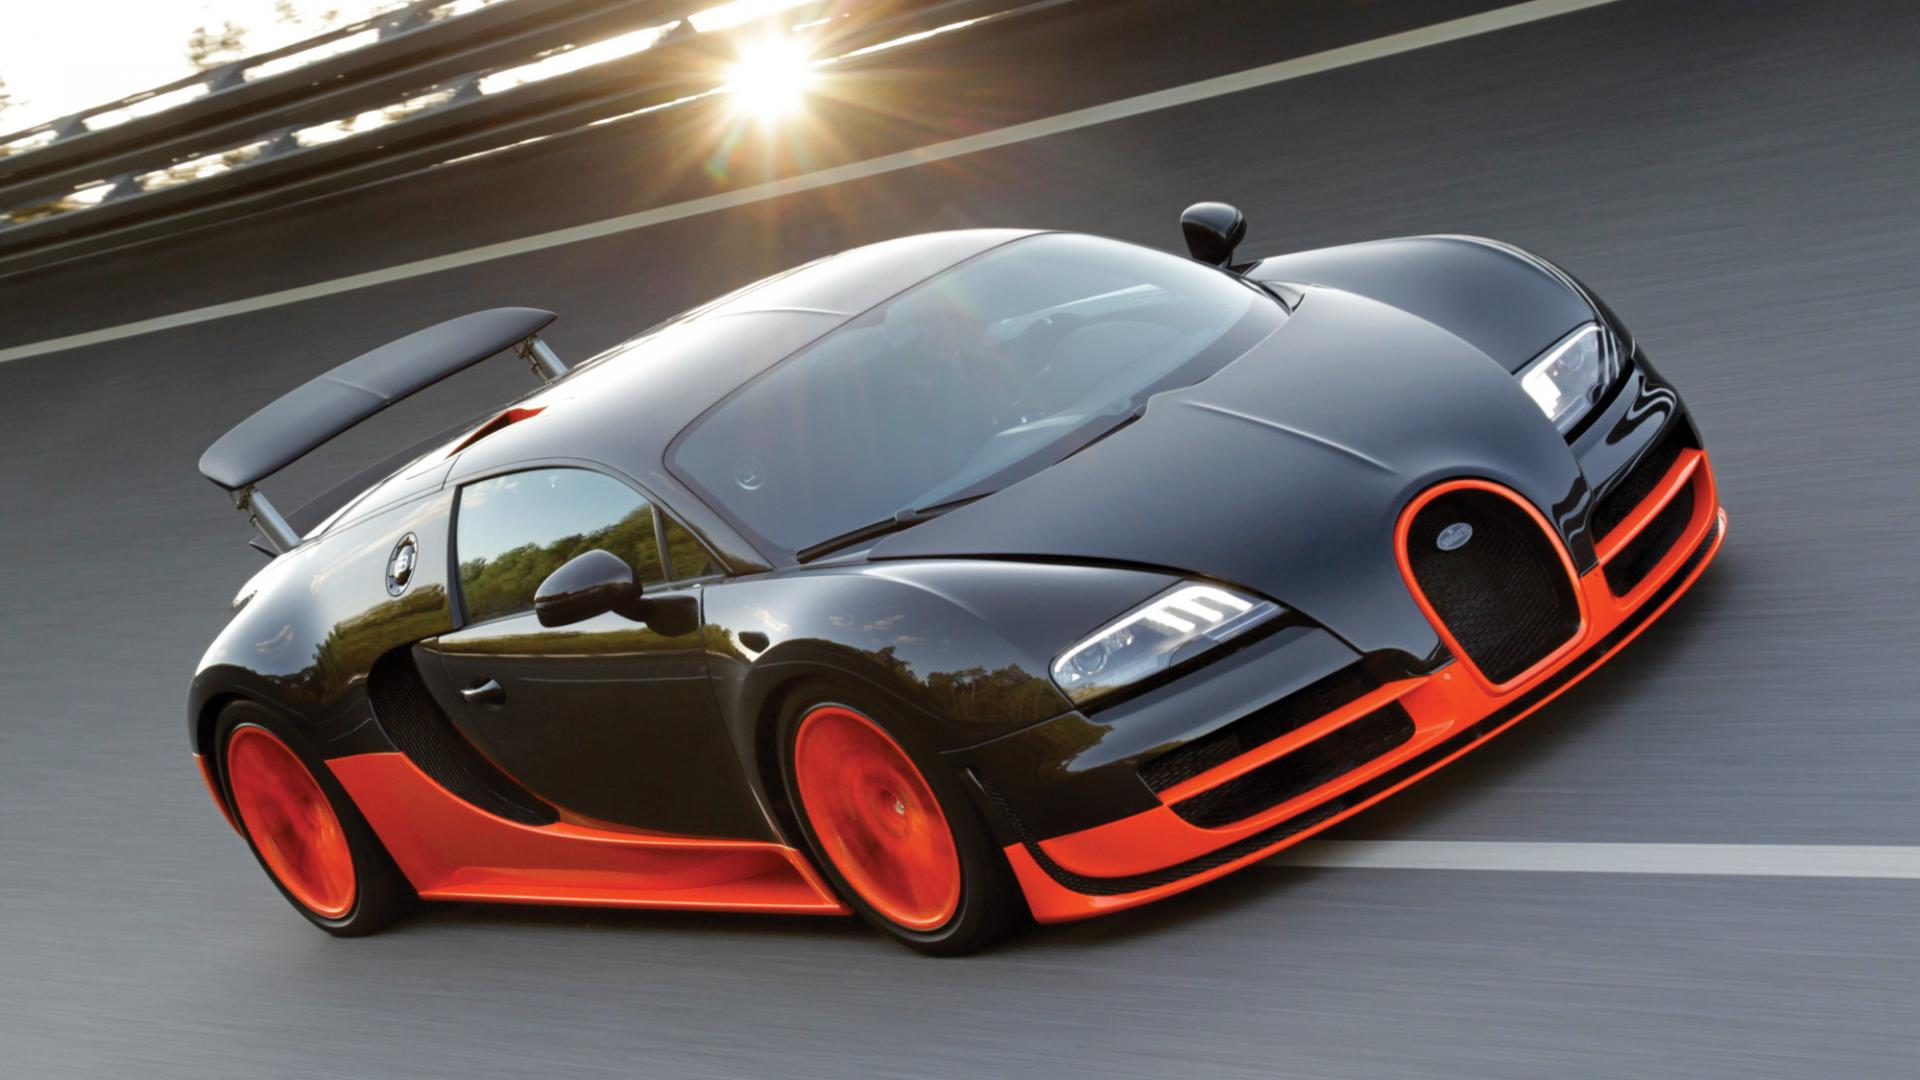 bugatti veyron super sport wallpaper x ieeotu engine information. Black Bedroom Furniture Sets. Home Design Ideas